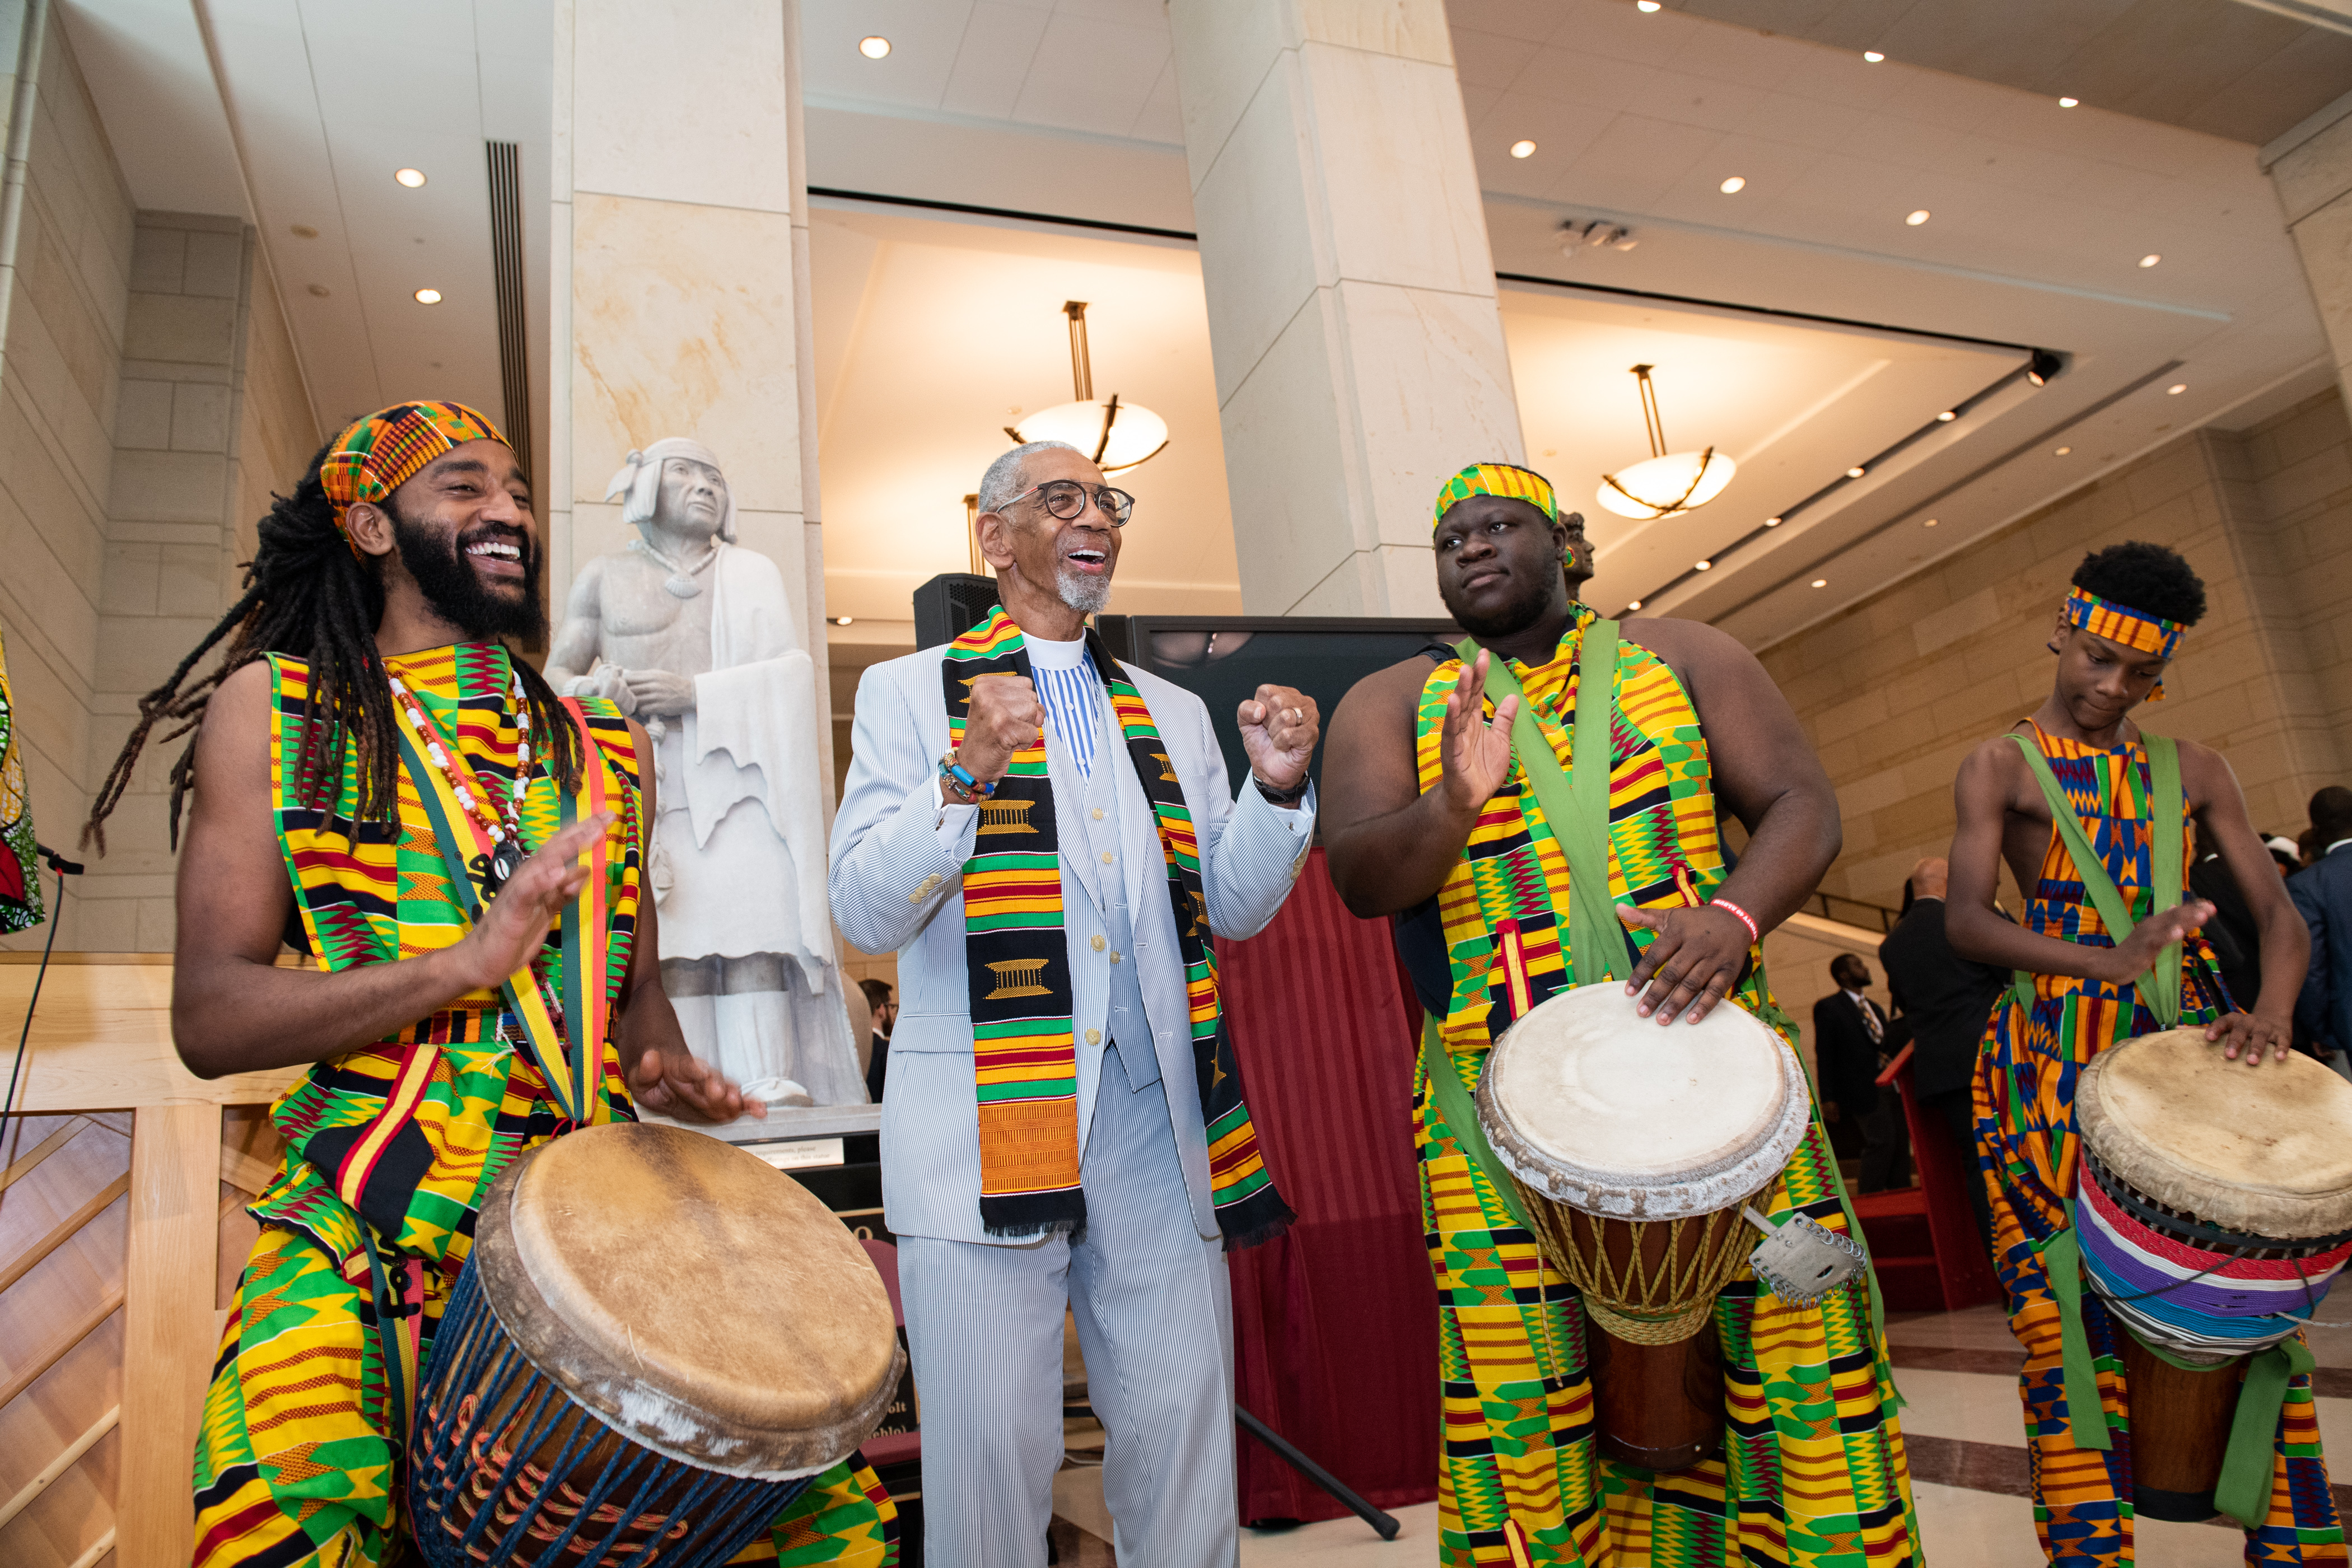 The event opened with traditional African drummers and dancers. Photo by Franmarie Metzler.